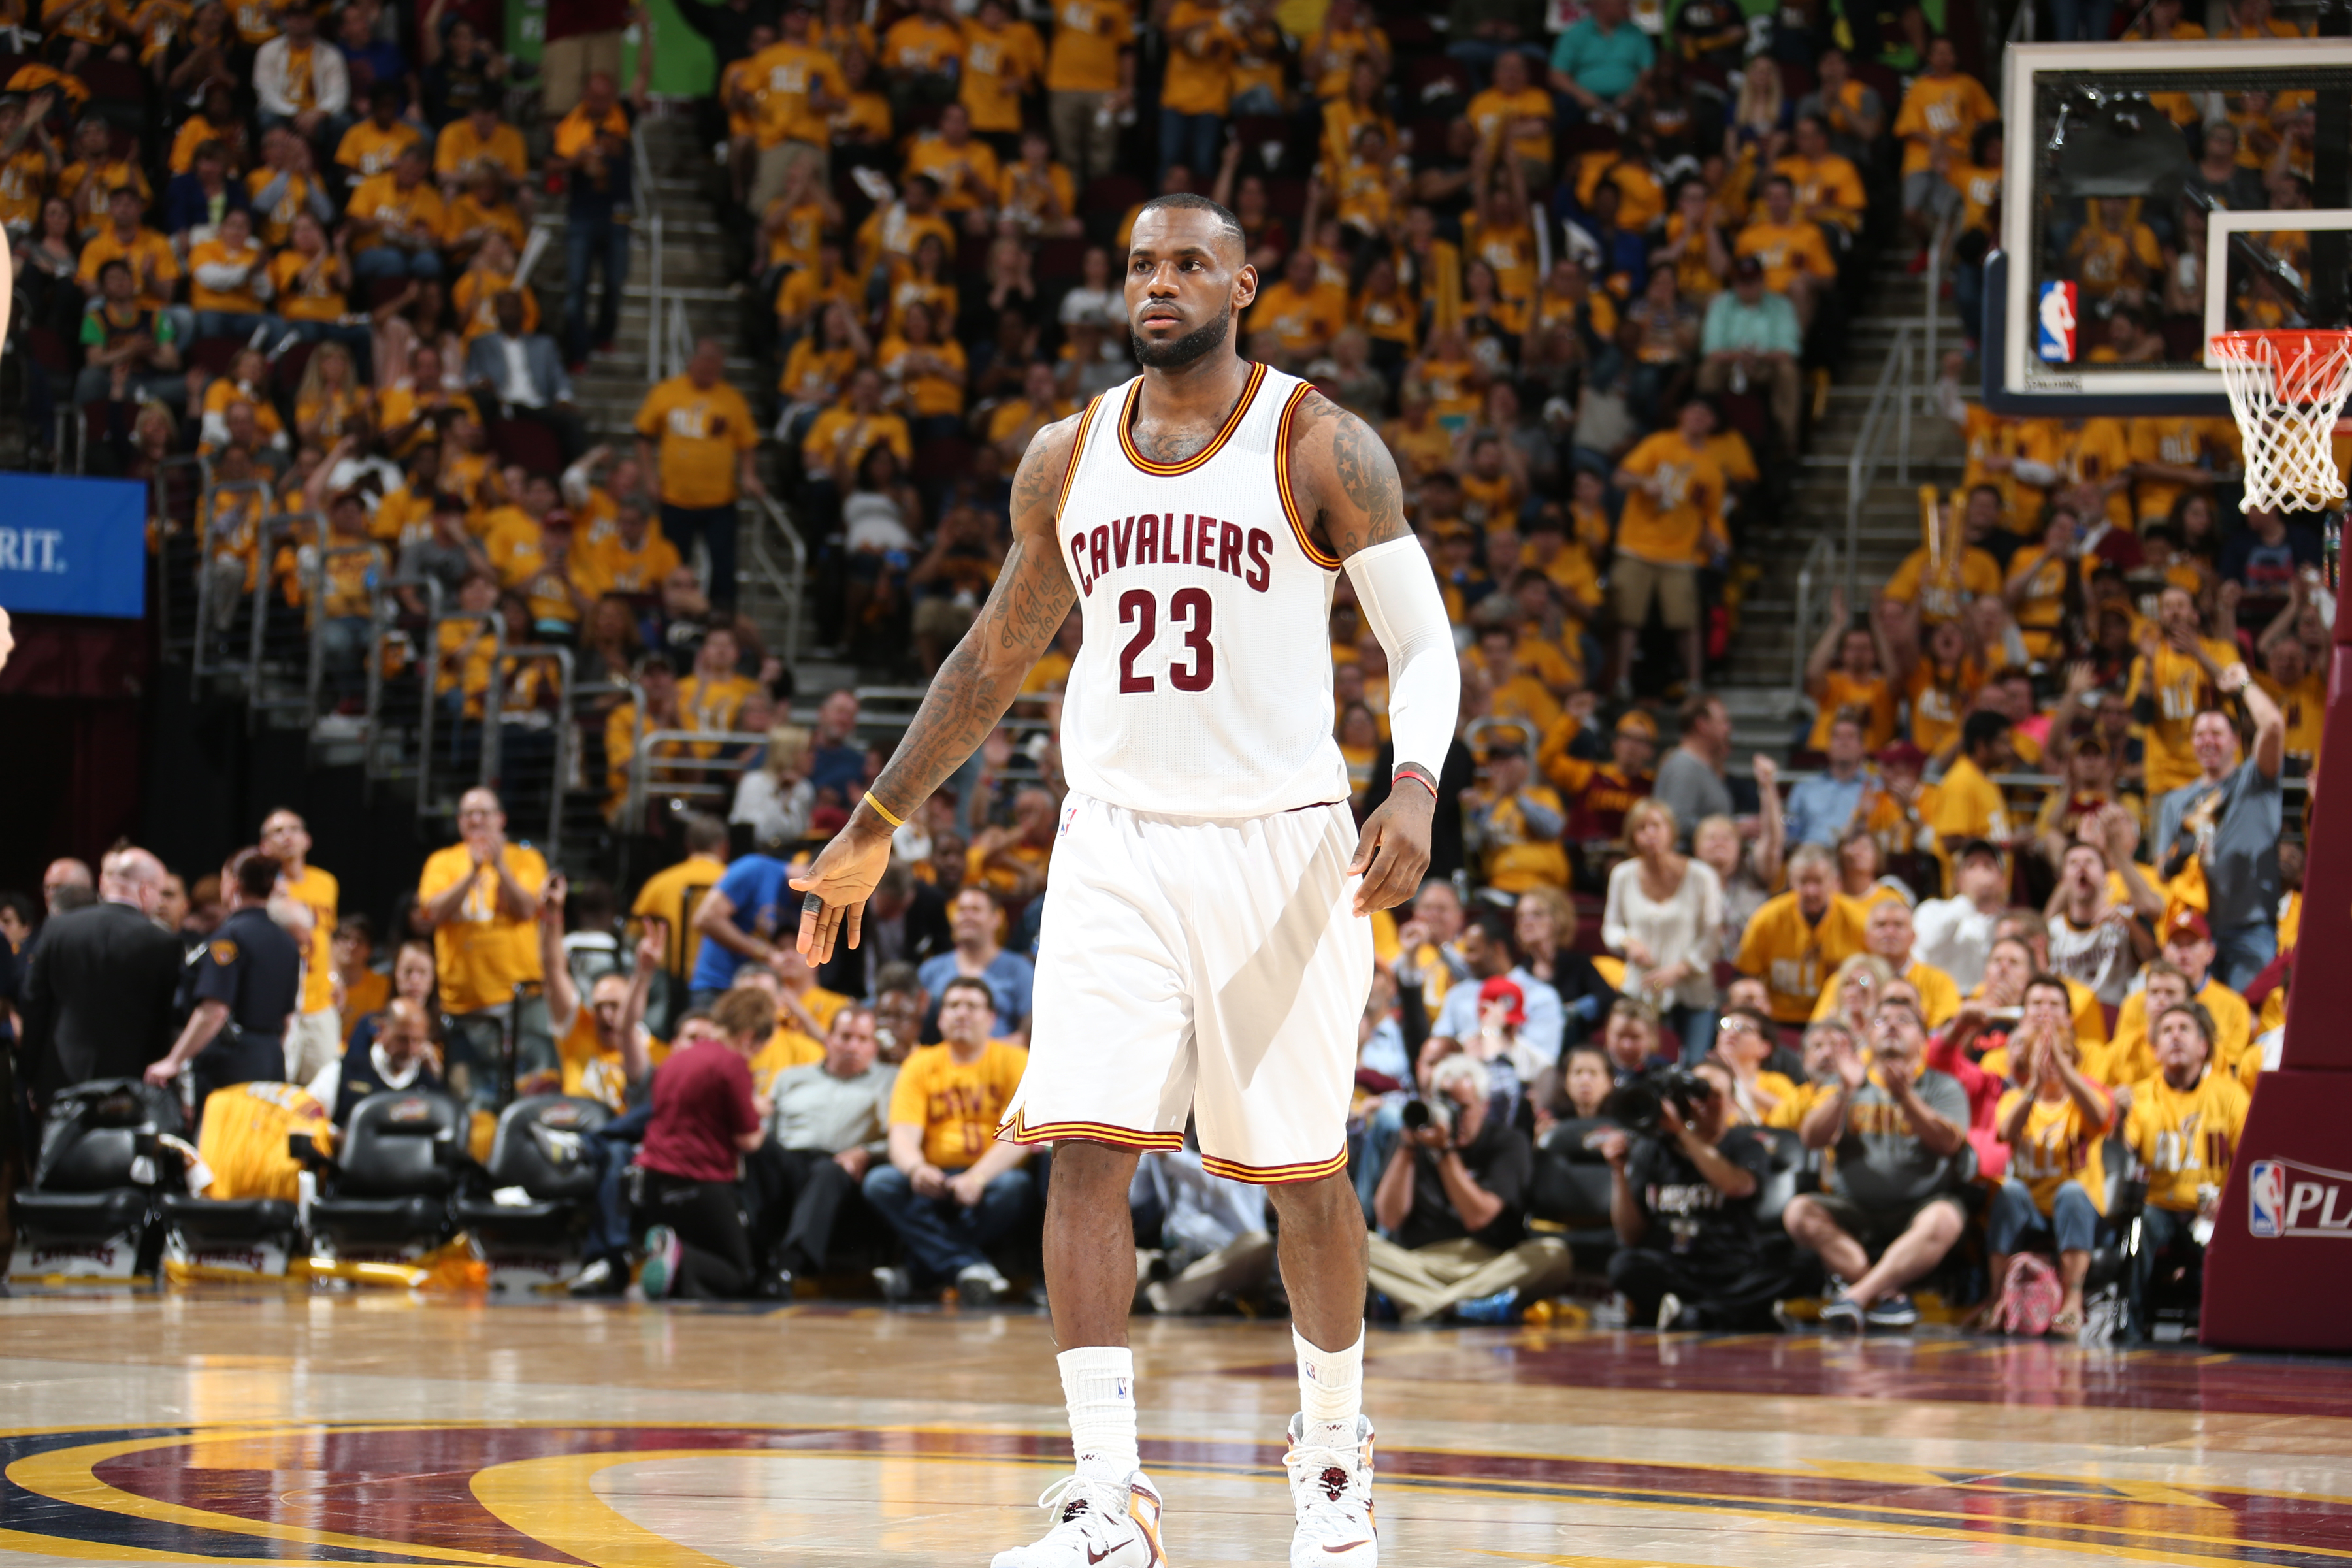 CLEVELAND, OH - MAY 4:  LeBron James #23 of the Cleveland Cavaliers in Game One of the Eastern Conference Semifinals against the Chicago Bulls during the 2015 NBA Playoffs on May 4, 2015 at Quicken Loans Arena in Cleveland, Ohio.  (Photo by Nathaniel S. B